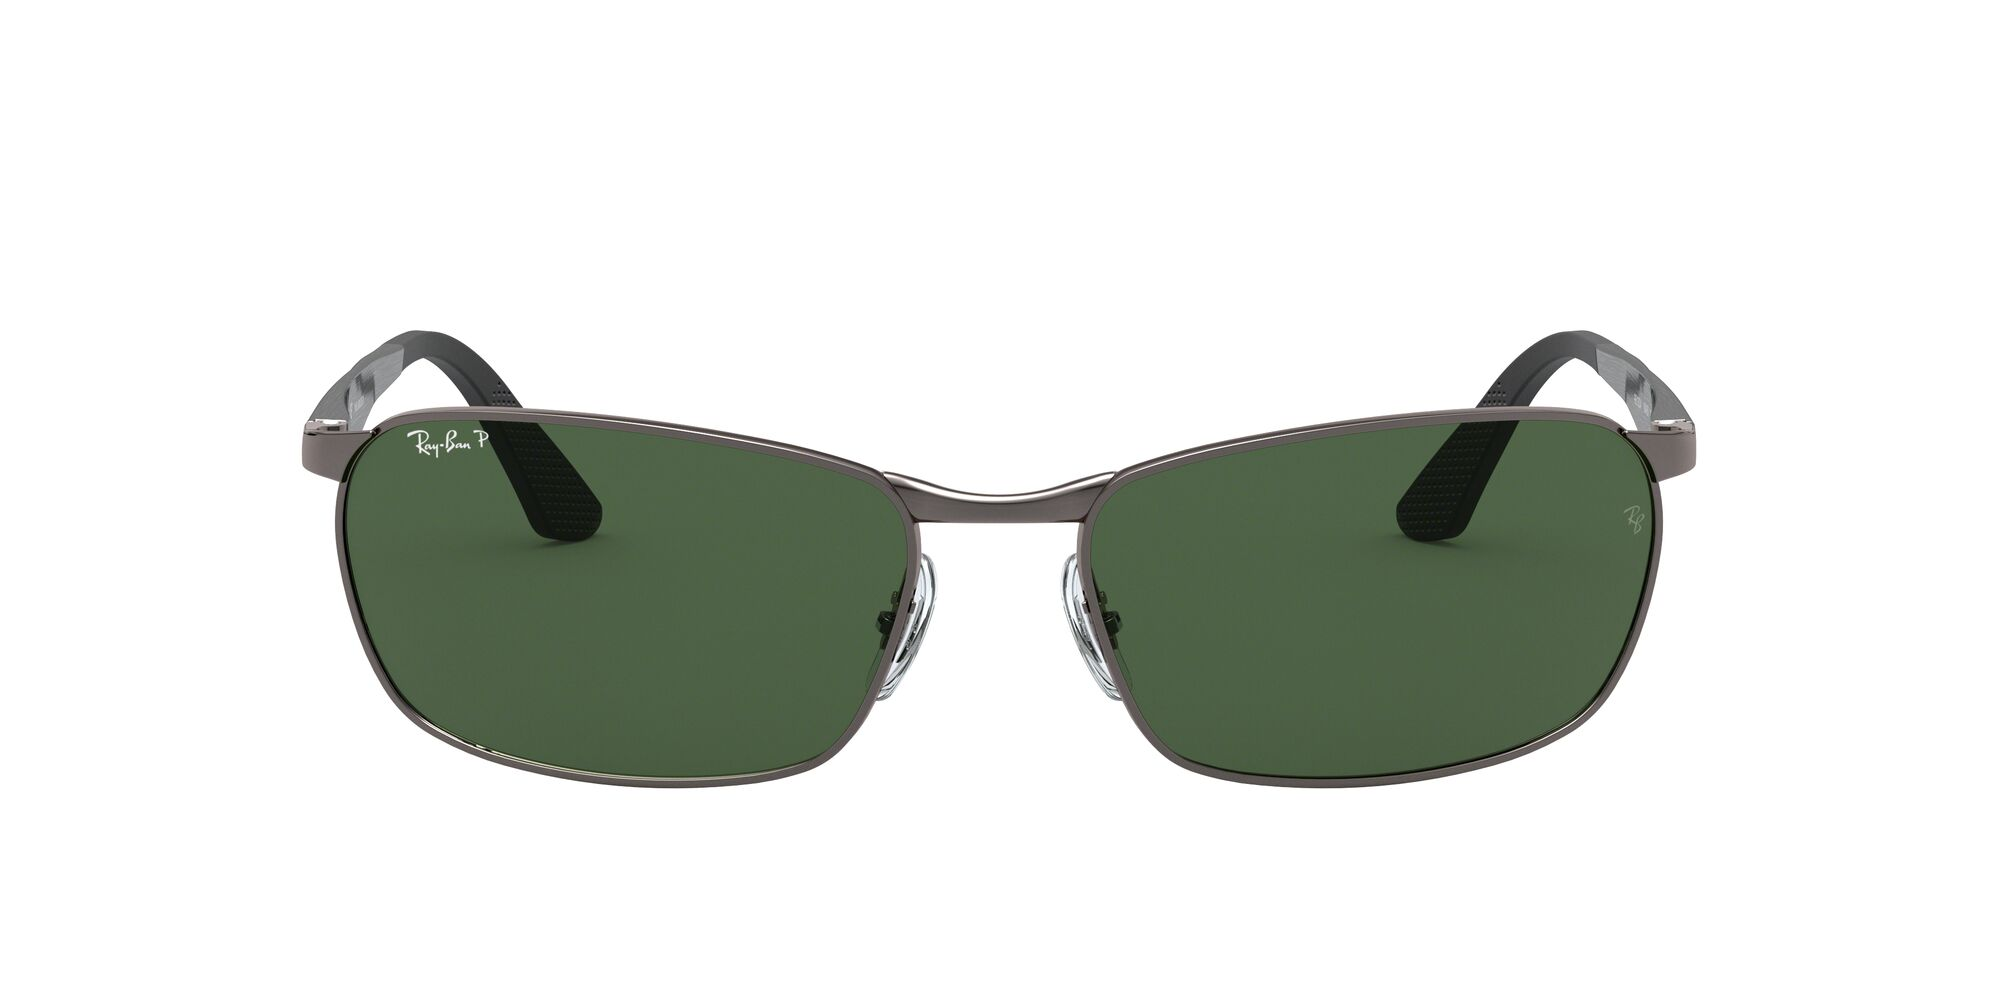 Front Ray-Ban Ray-Ban 0RB3534 004/58 59/17 Grijs/Groen